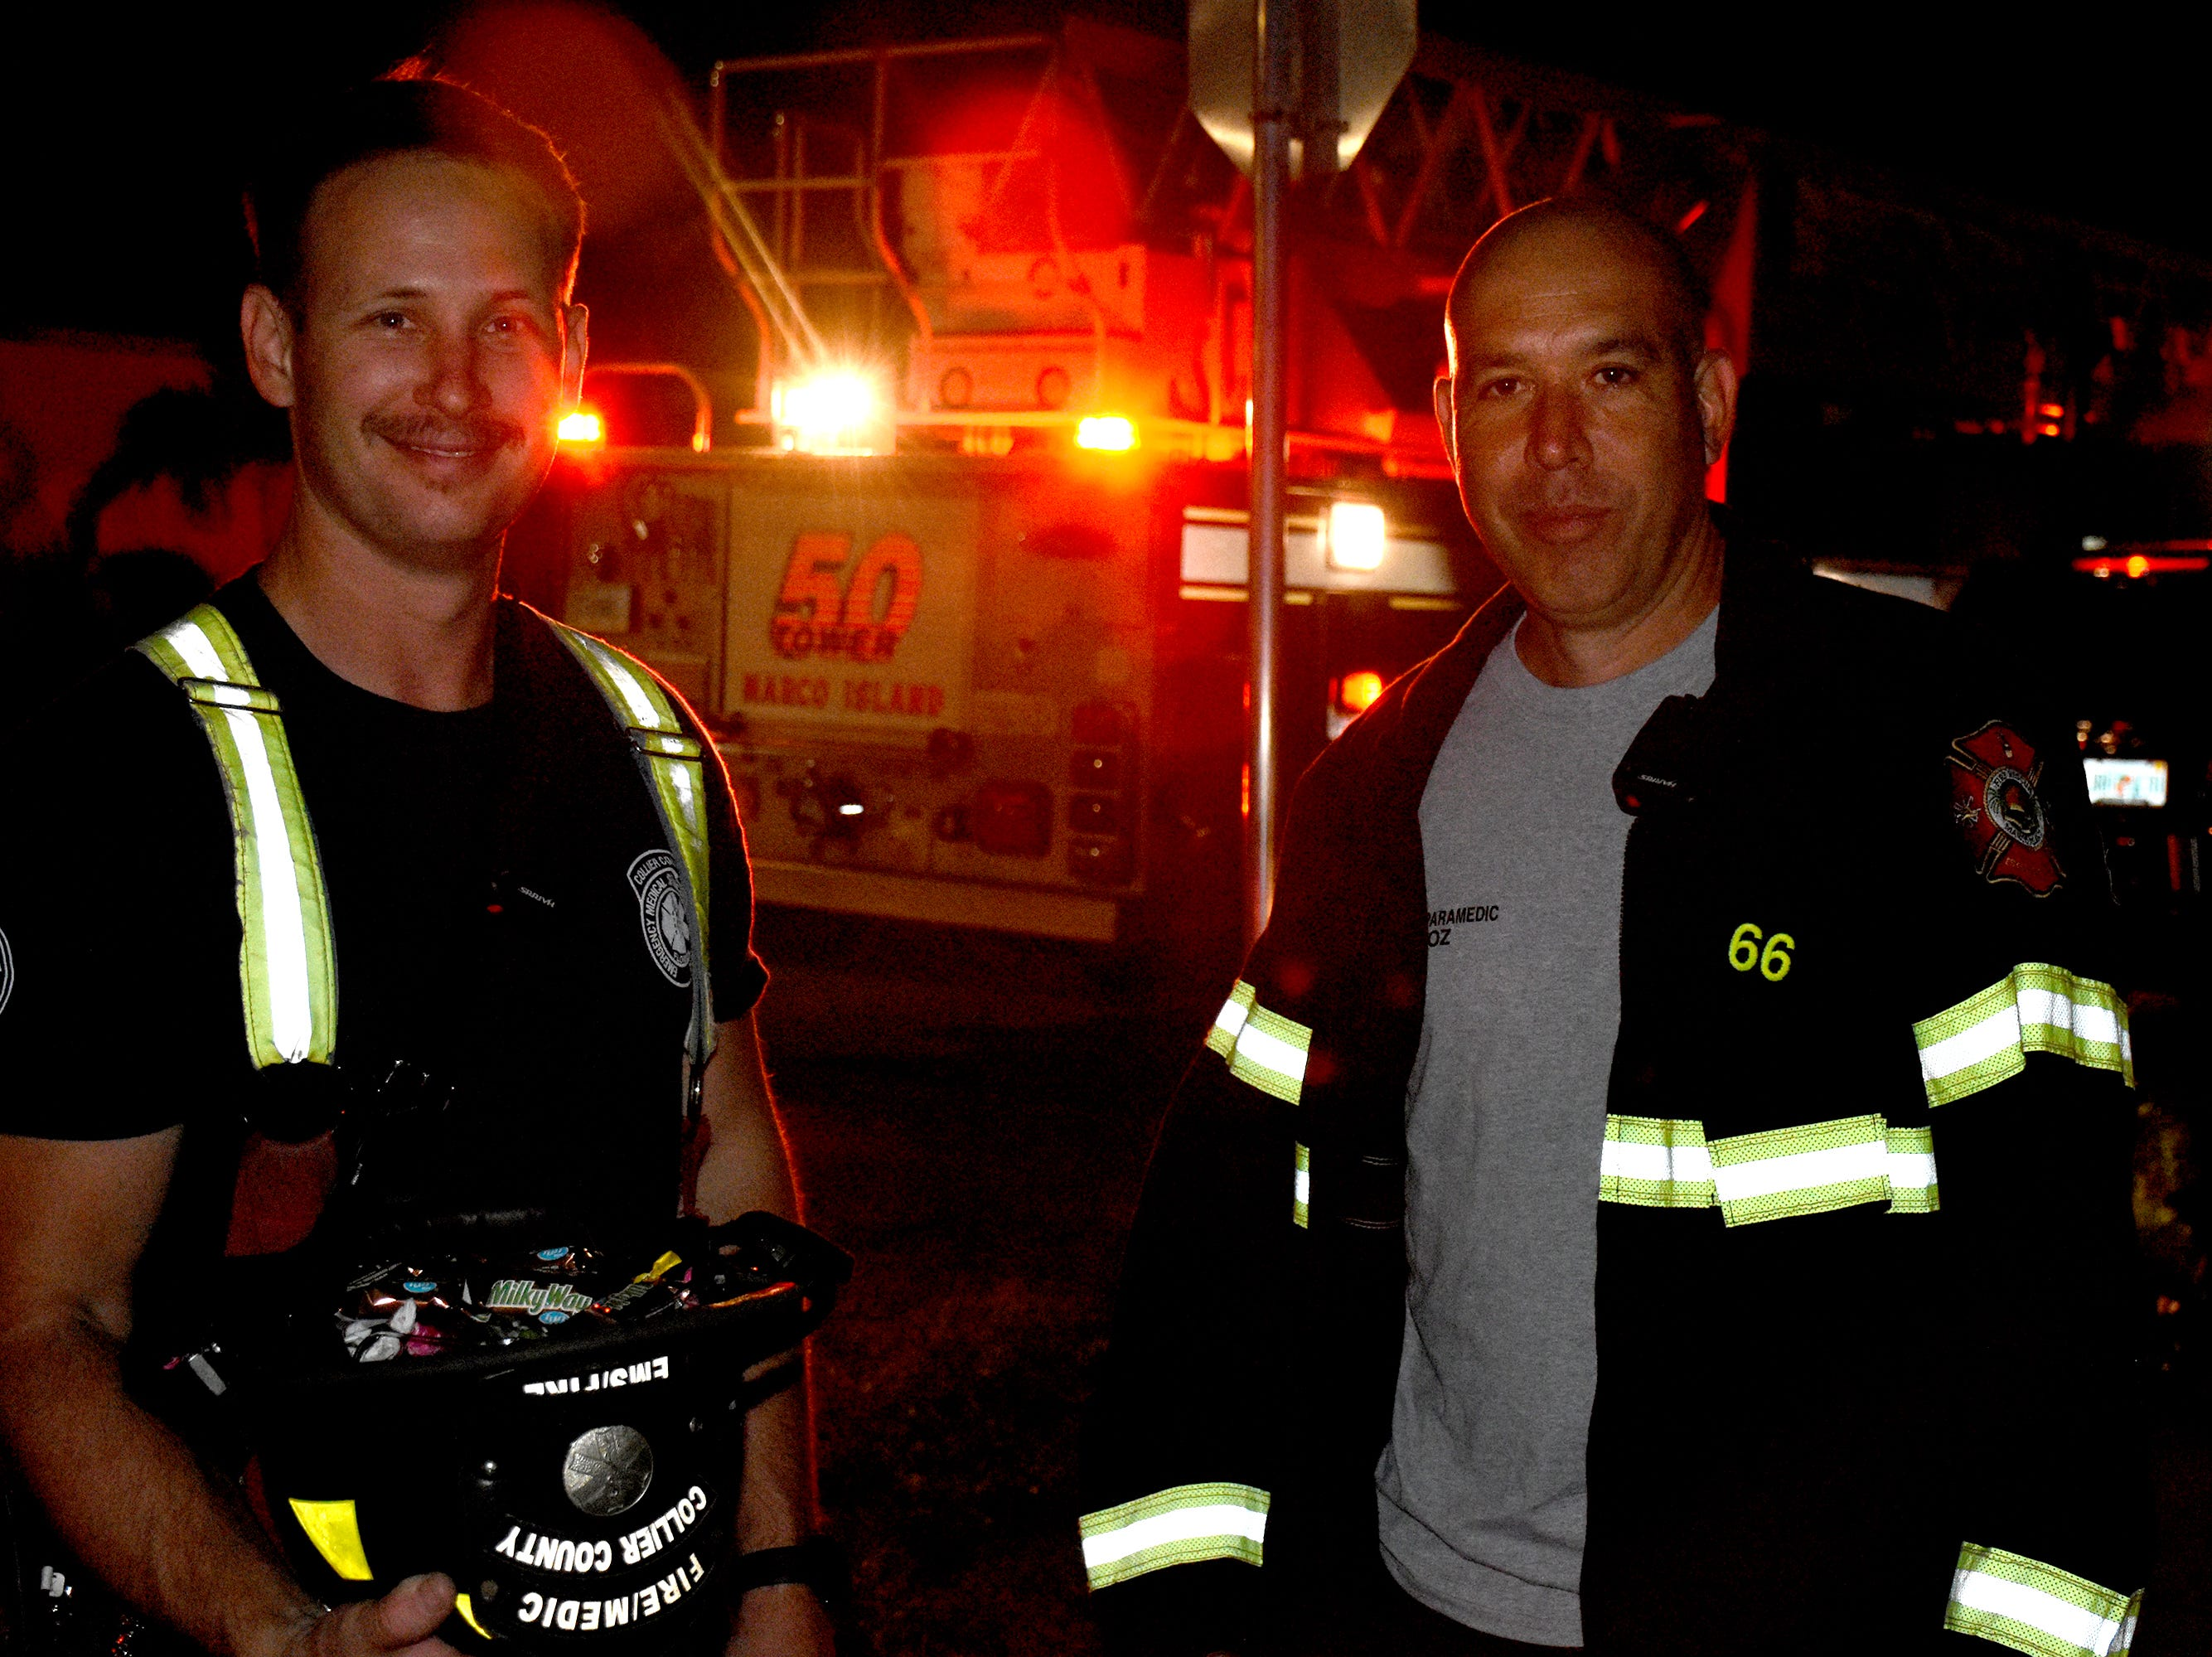 Firefighters Kurt Peterson, left, and Albert Muñoz sport convincing costumes. Wednesday evening, in a decades-old tradition, the streets around Tommie Barfield Elementary turned into a trick or treatin' block party.